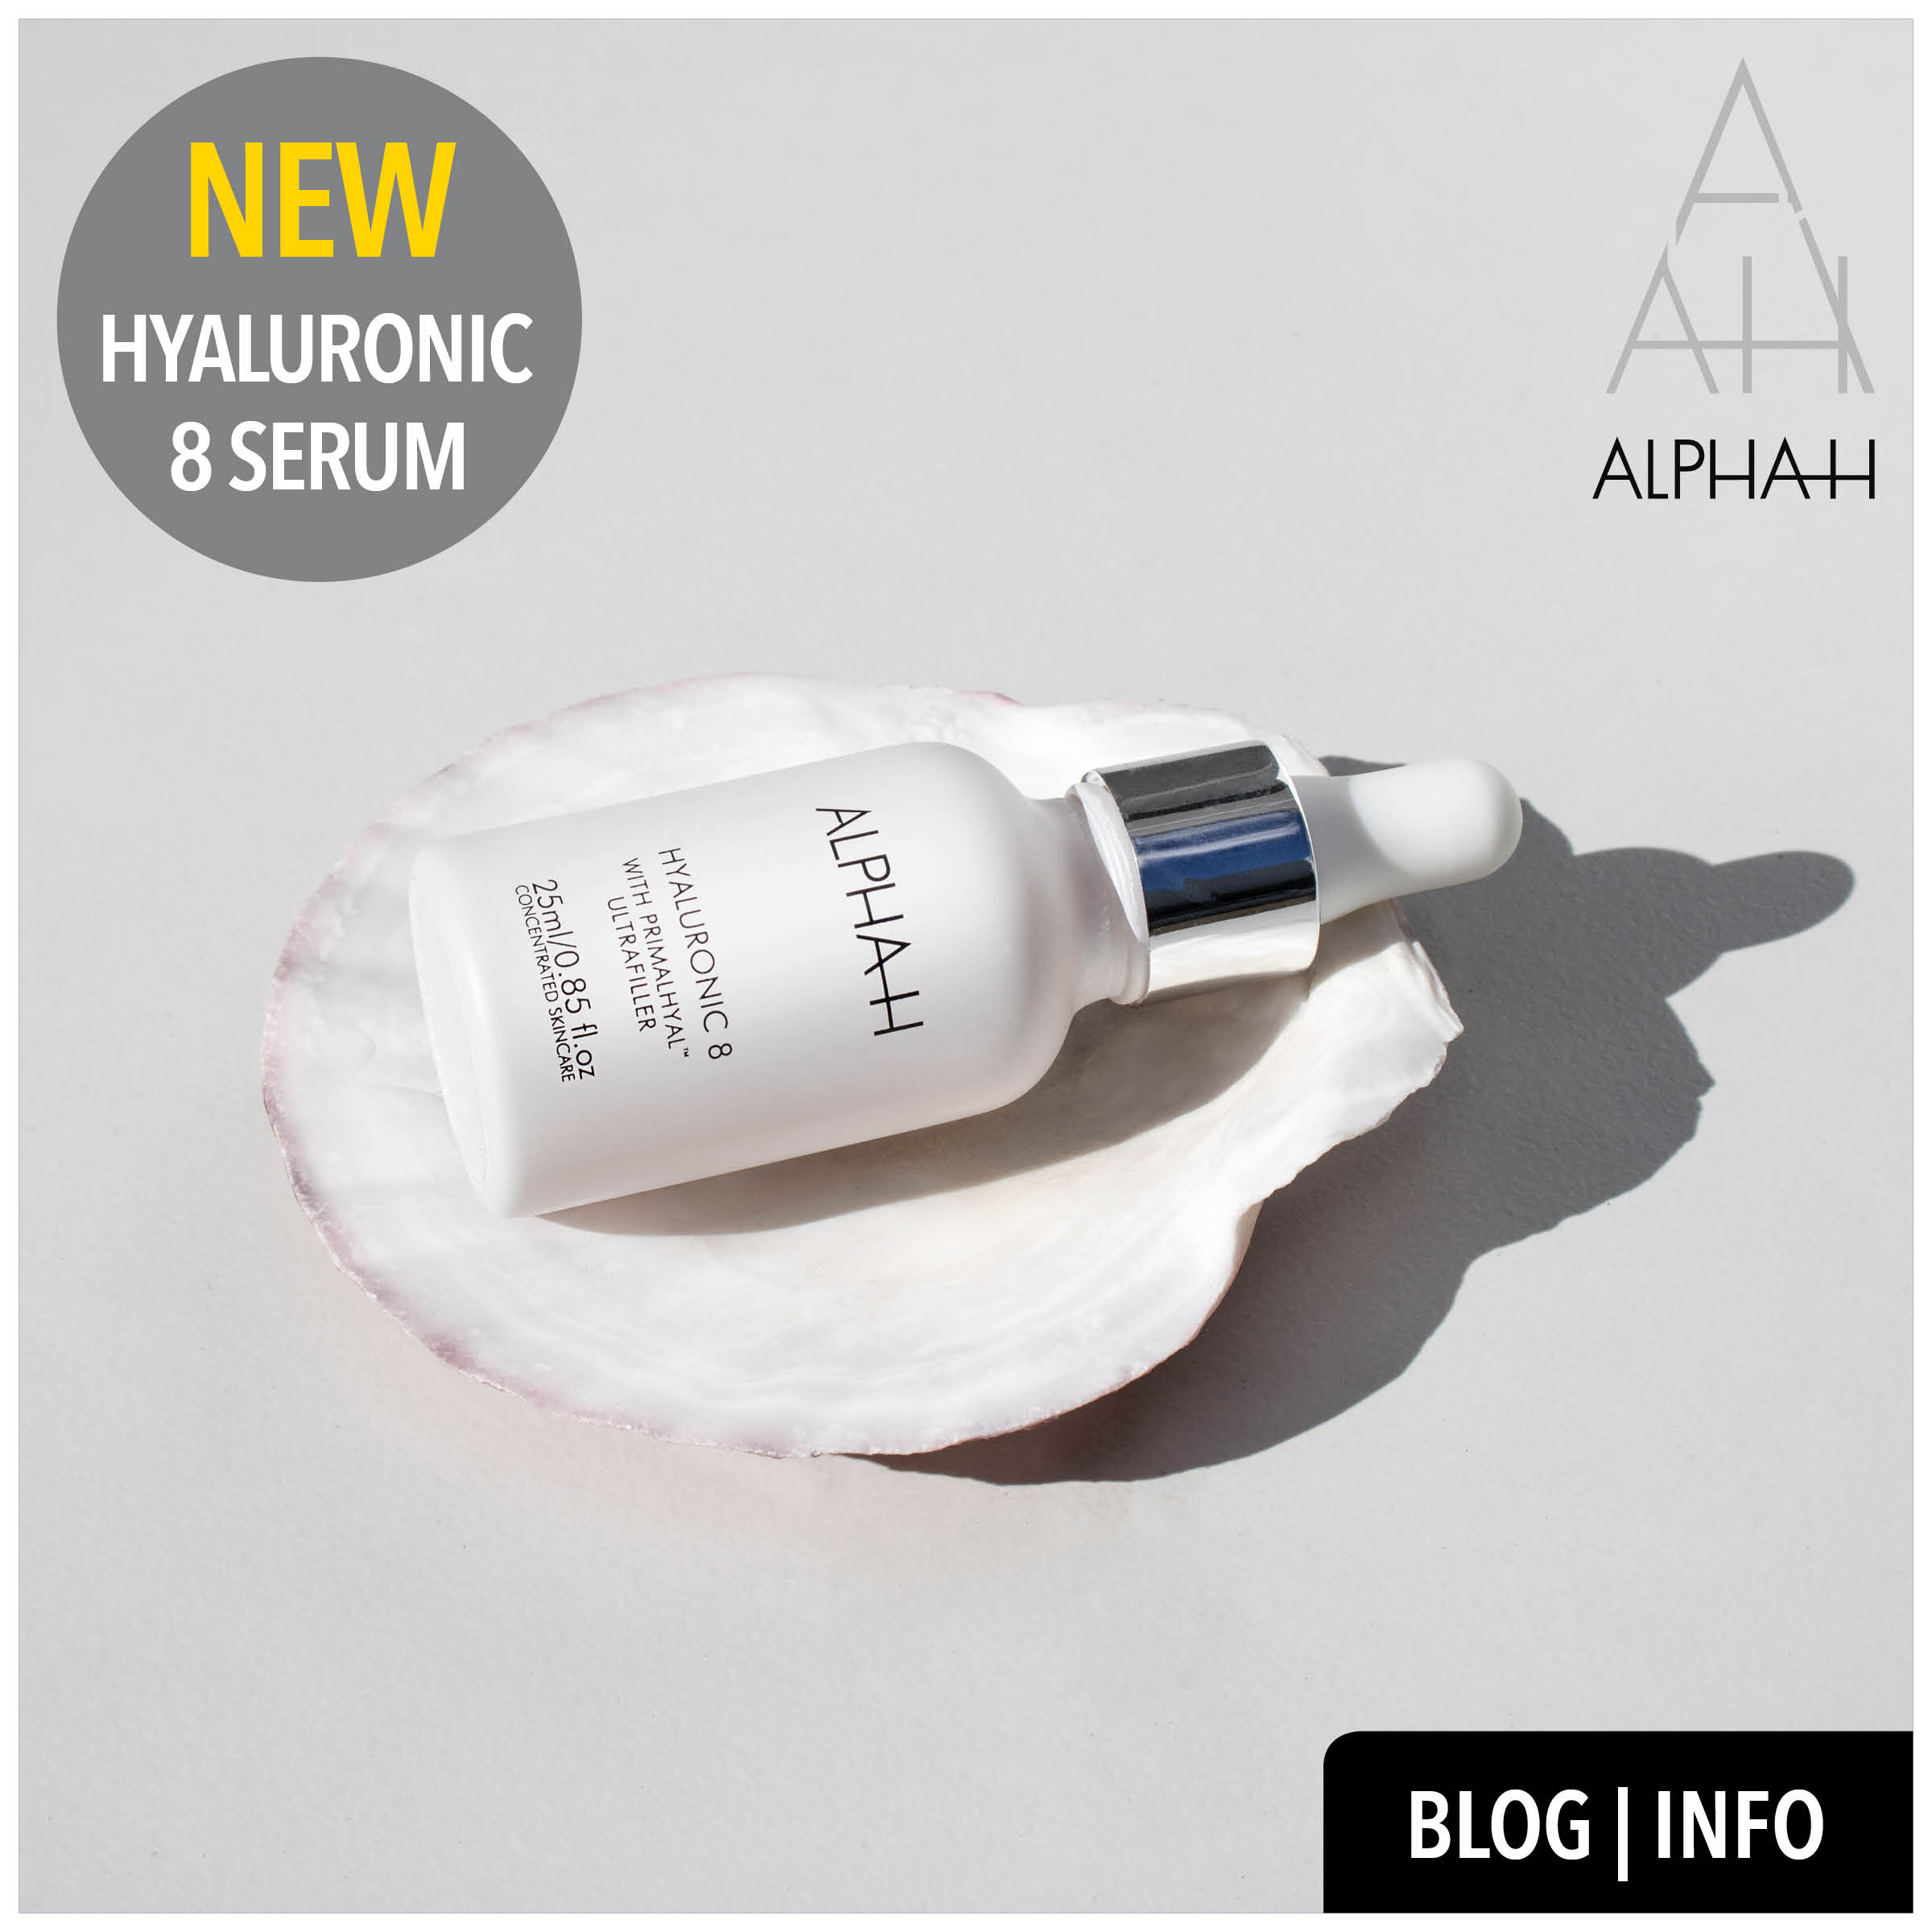 new alpha-h hyaluronic 8 serum